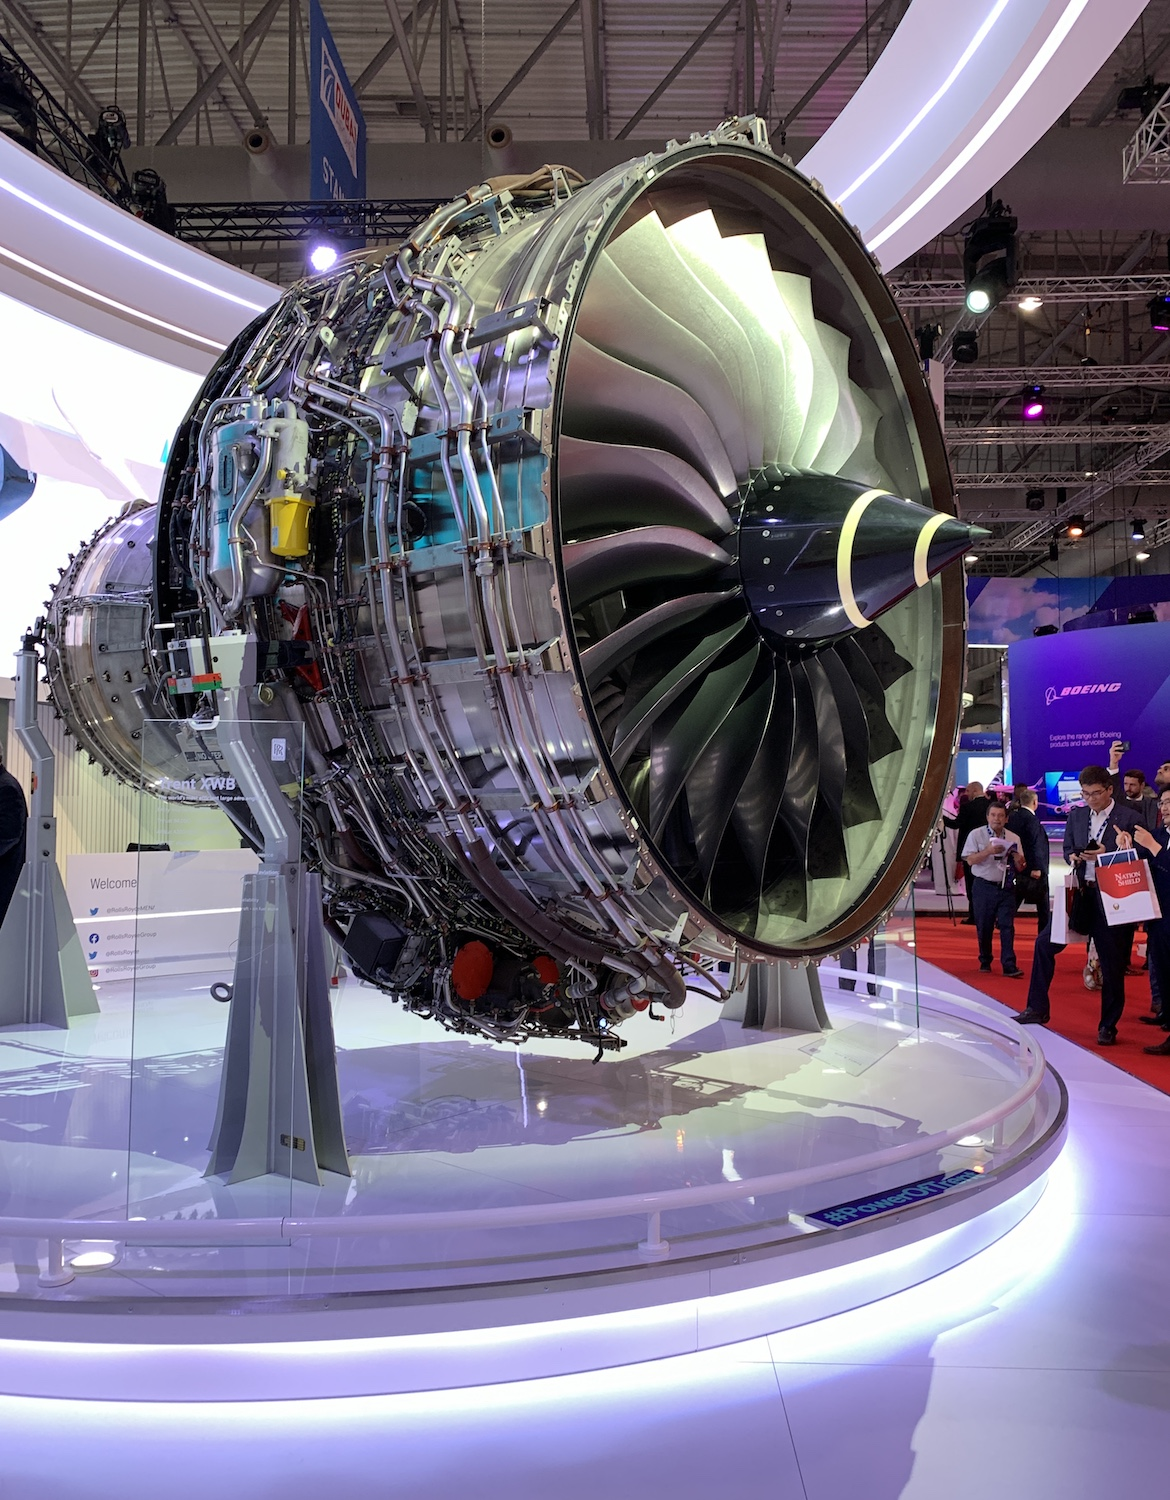 The Rolls-Royce Trent XWB engine that powers the Airbus A350 family of aircraft on display at the 2019 Dubai Airshow. (Denise McNabb)